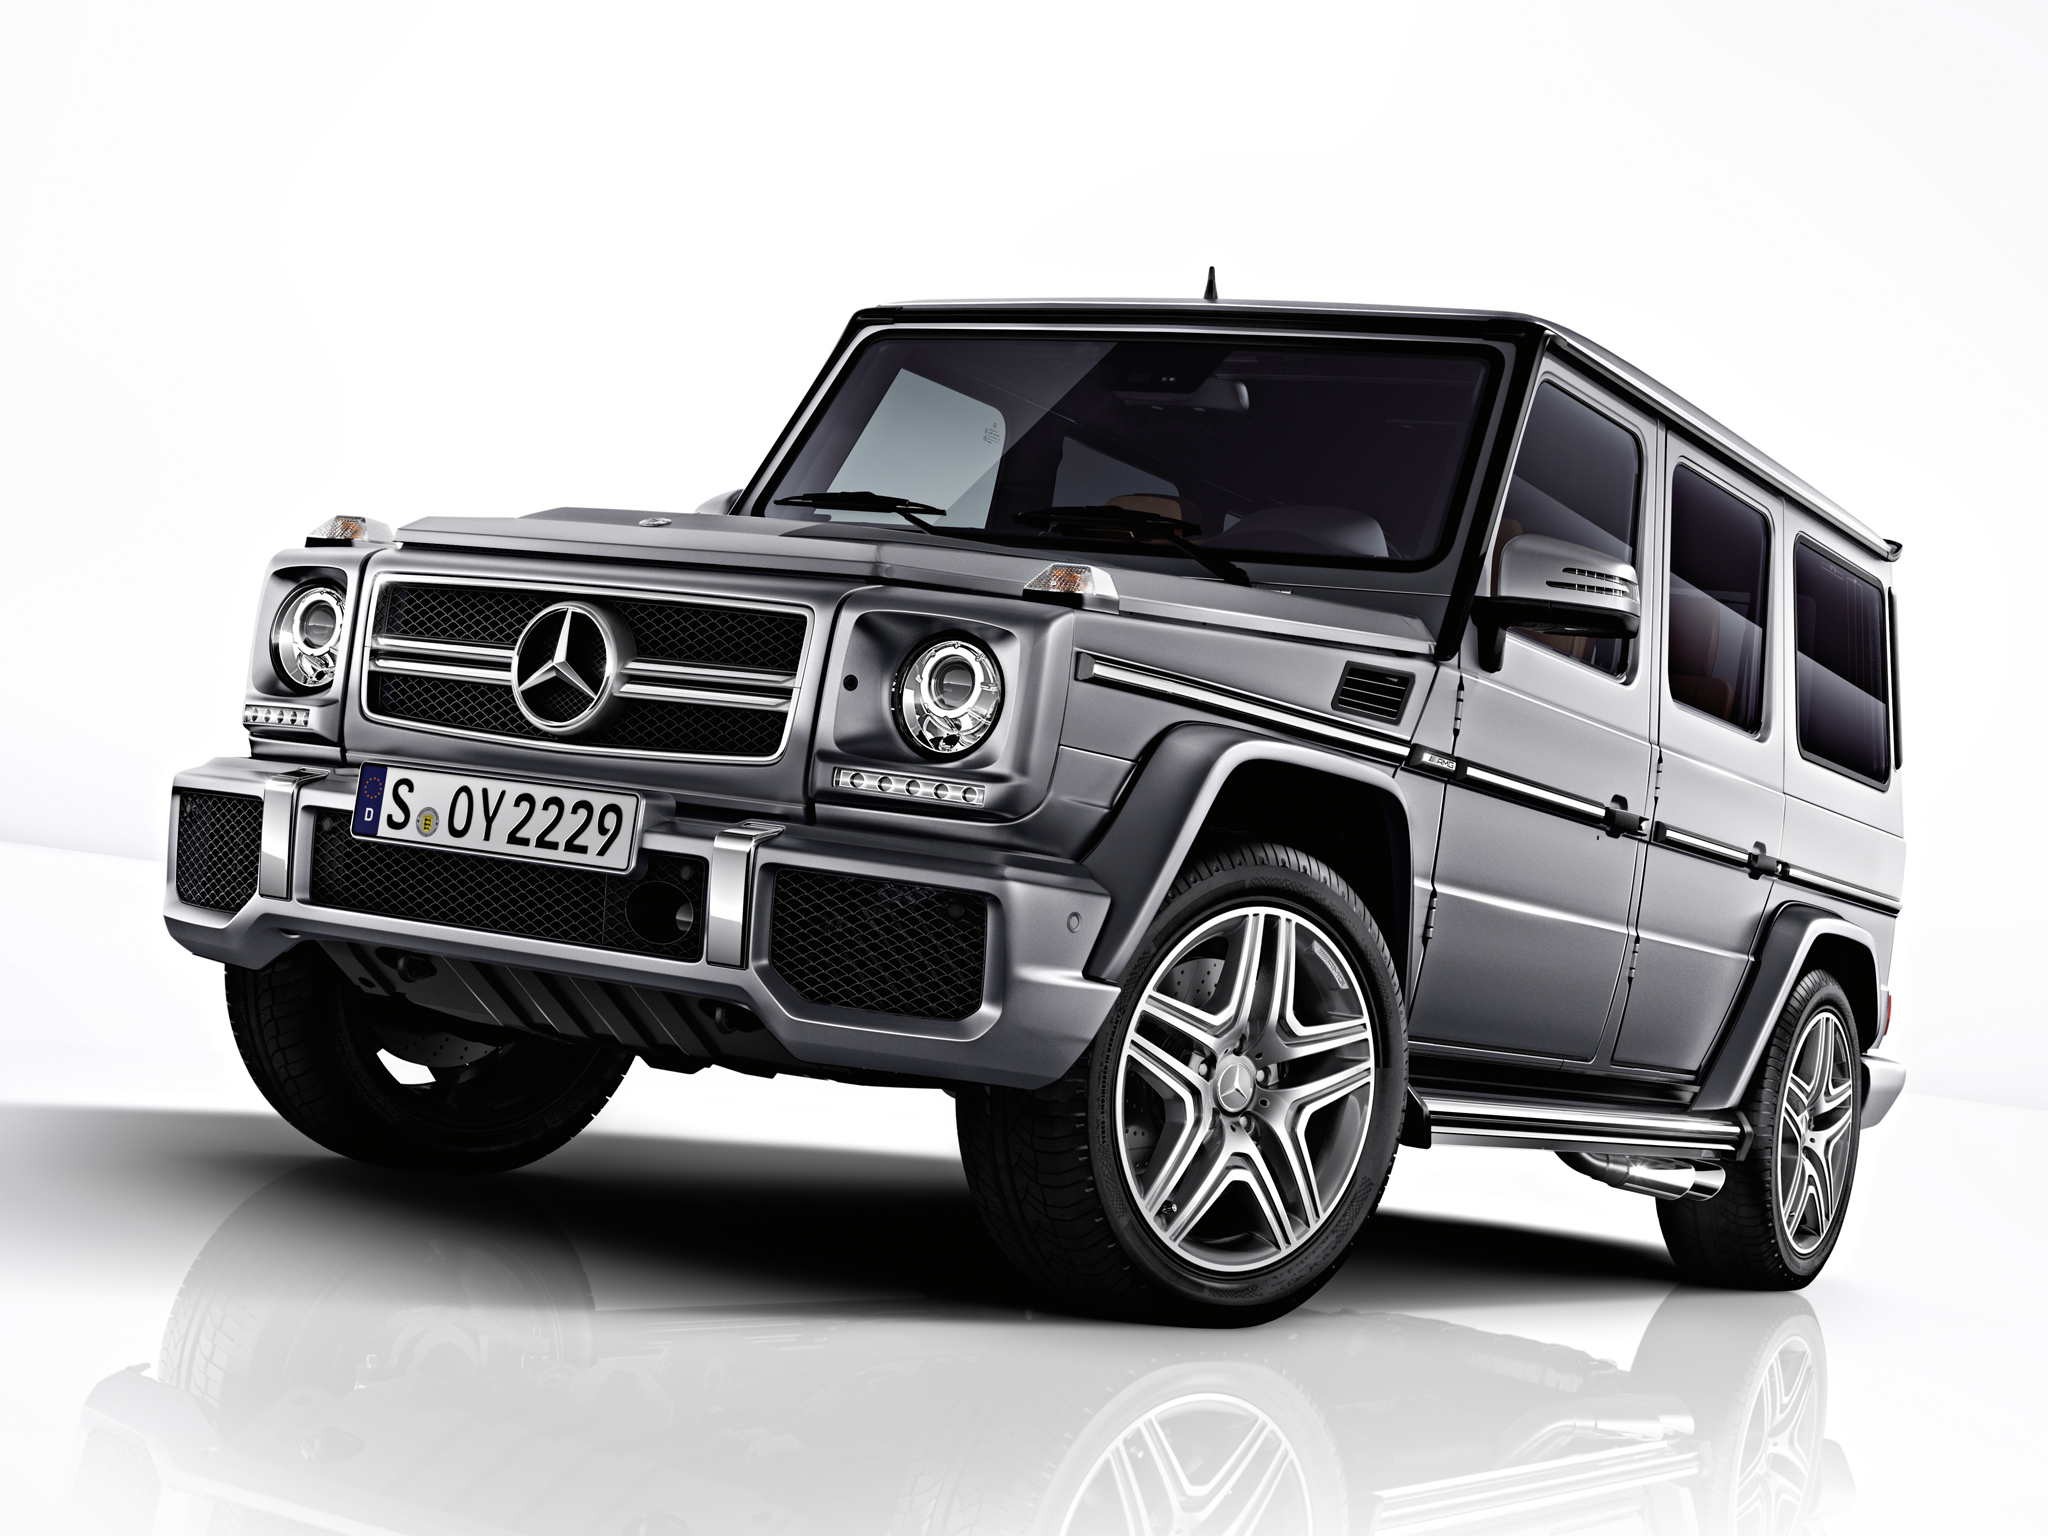 Mercedes benz g class amg photos reviews news specs for Mercedes benz range rover price